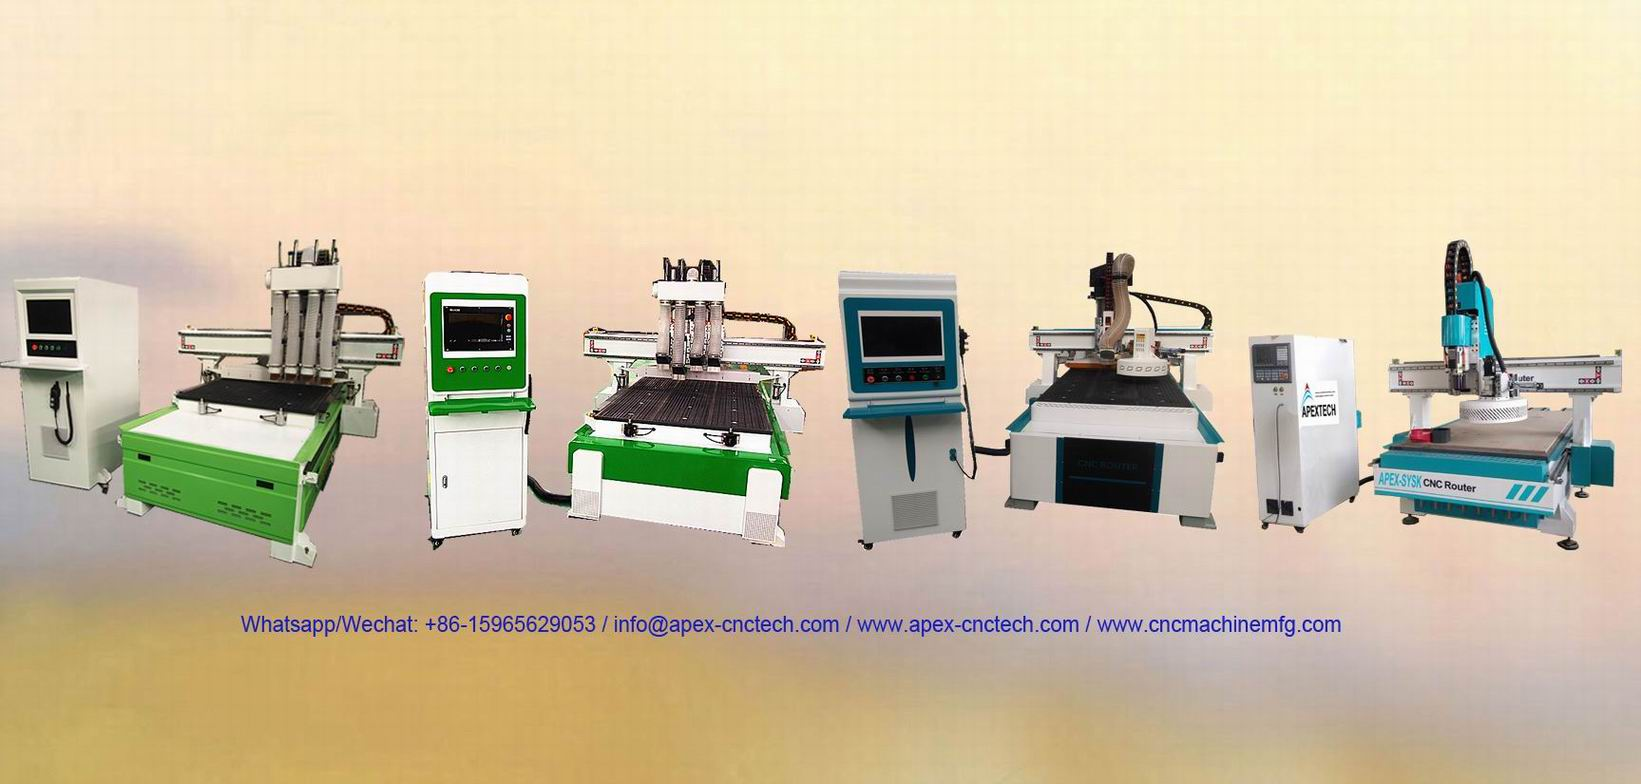 ATC CNC Router with Automatic Tool Changer Spindle Wood Engraving Machine